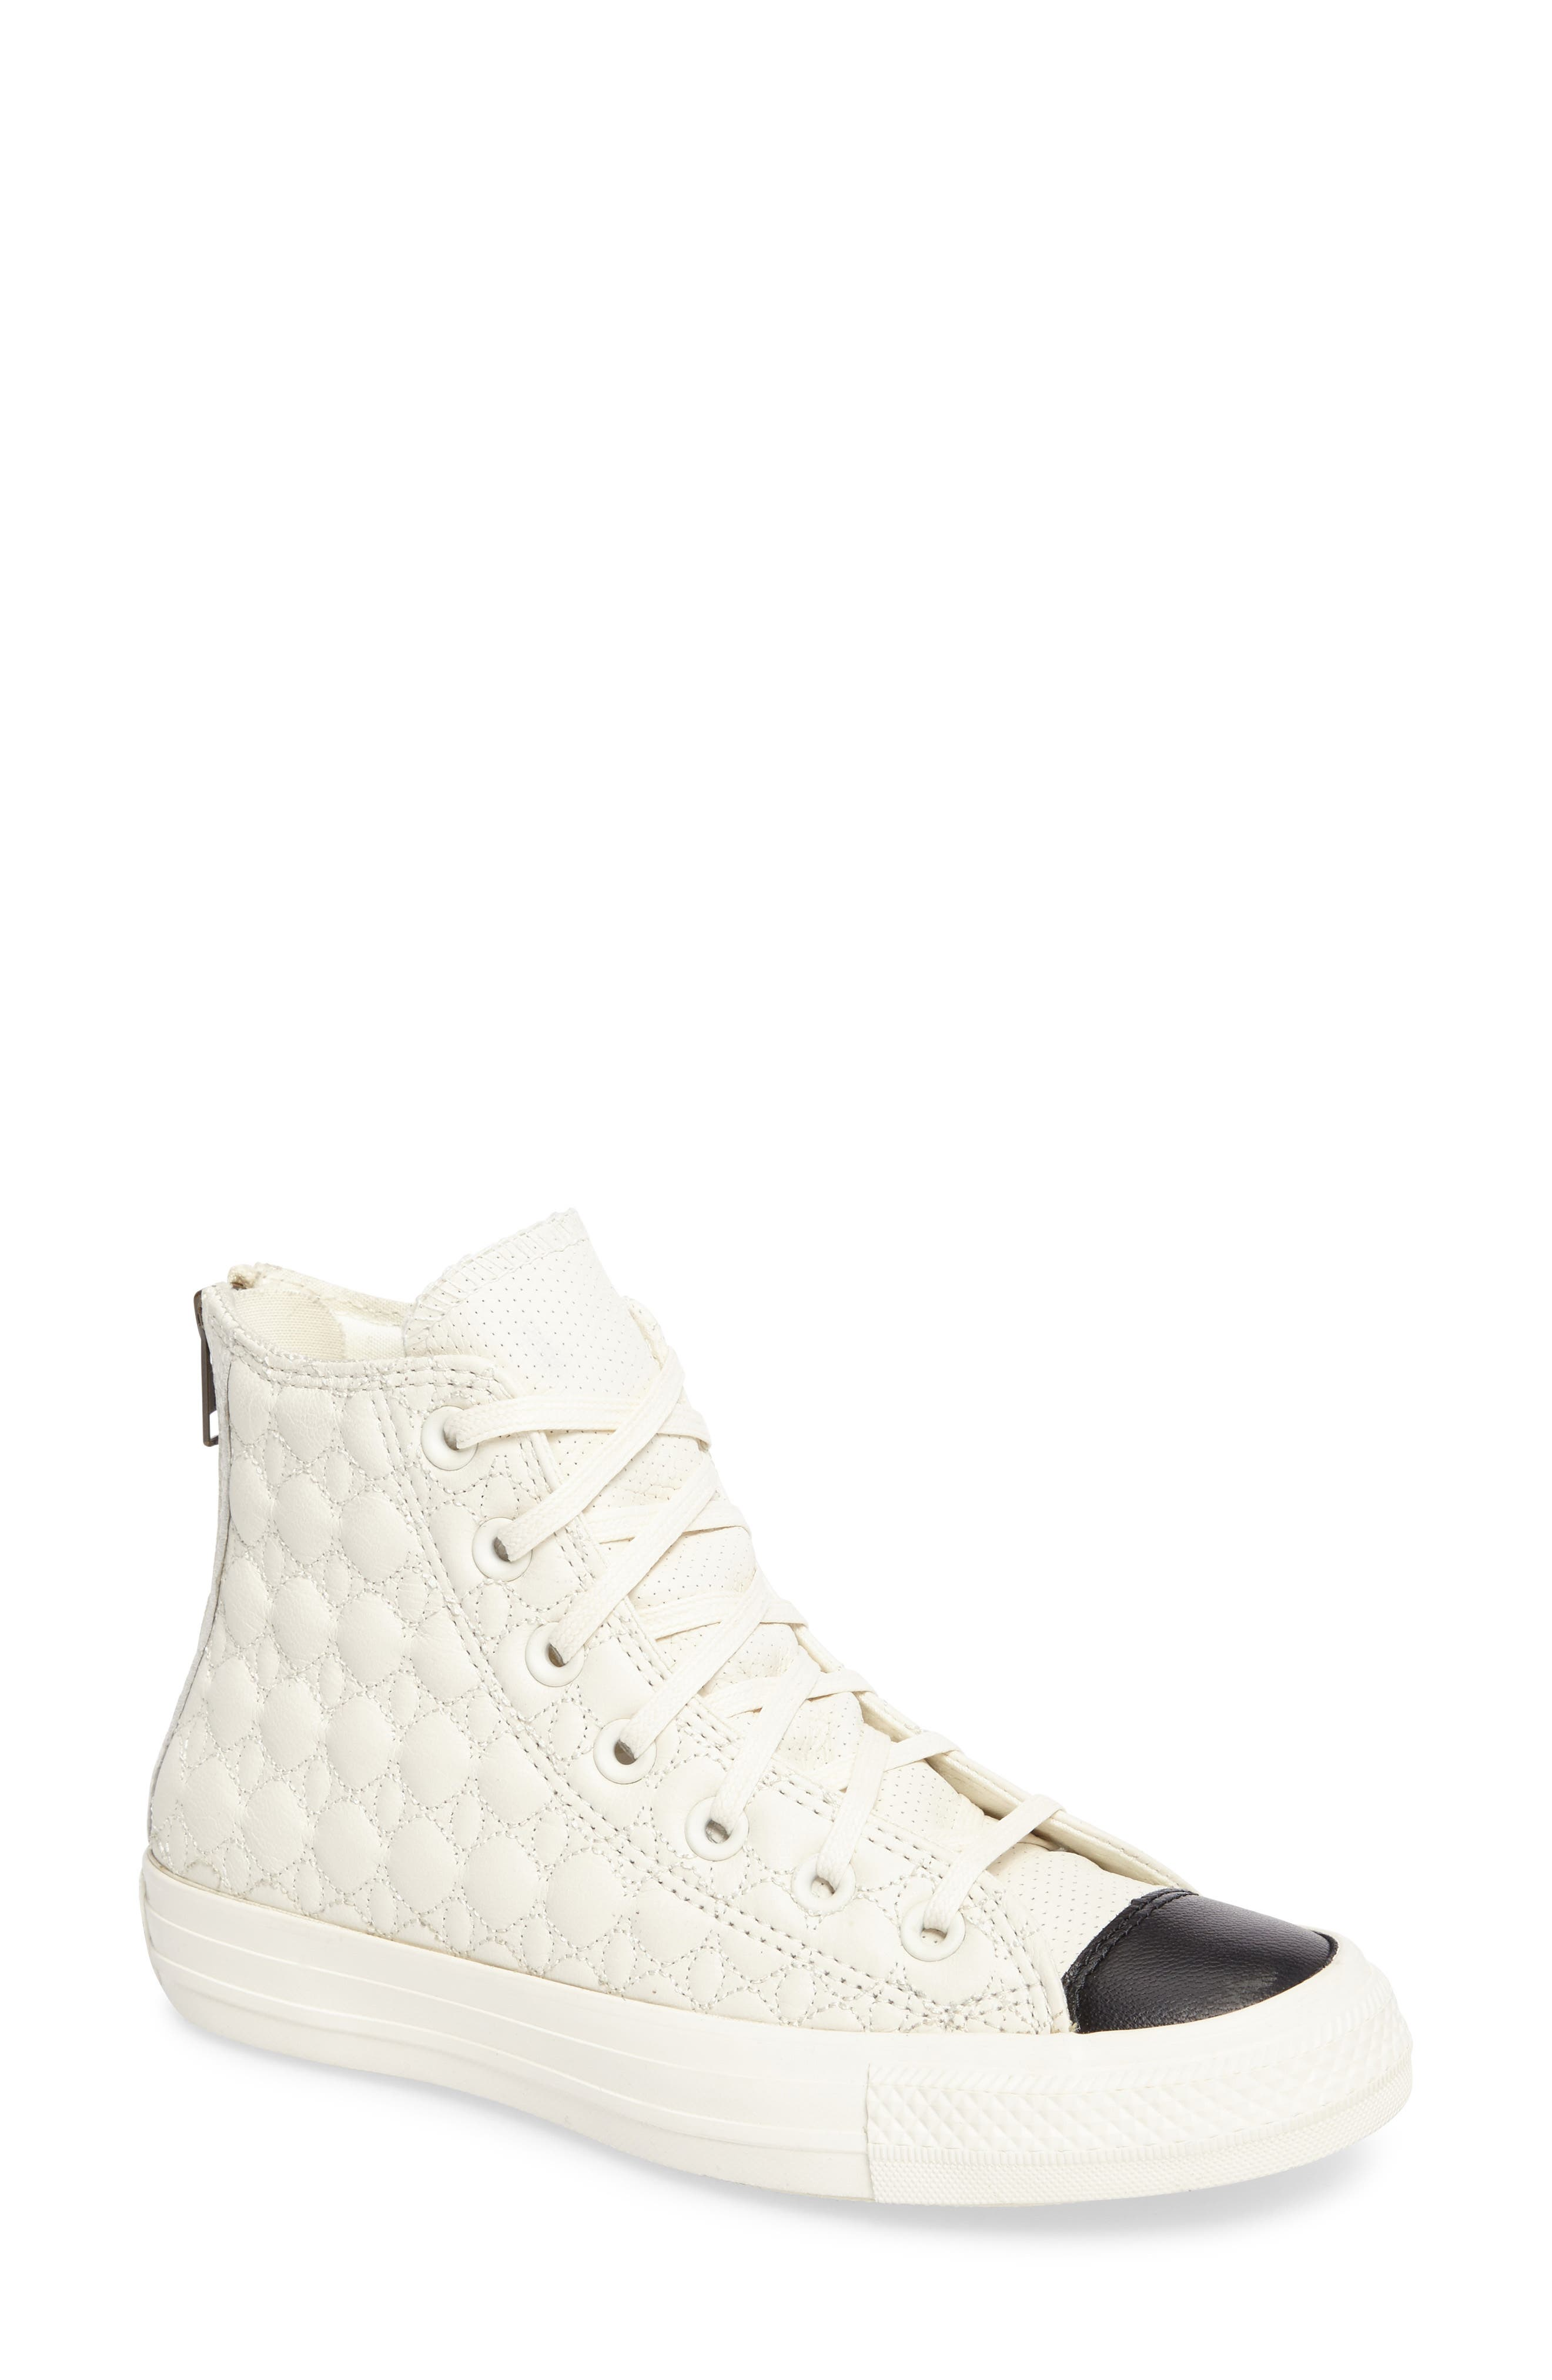 All Star<sup>®</sup> Quilted High Top Sneaker,                             Main thumbnail 1, color,                             Egret Leather